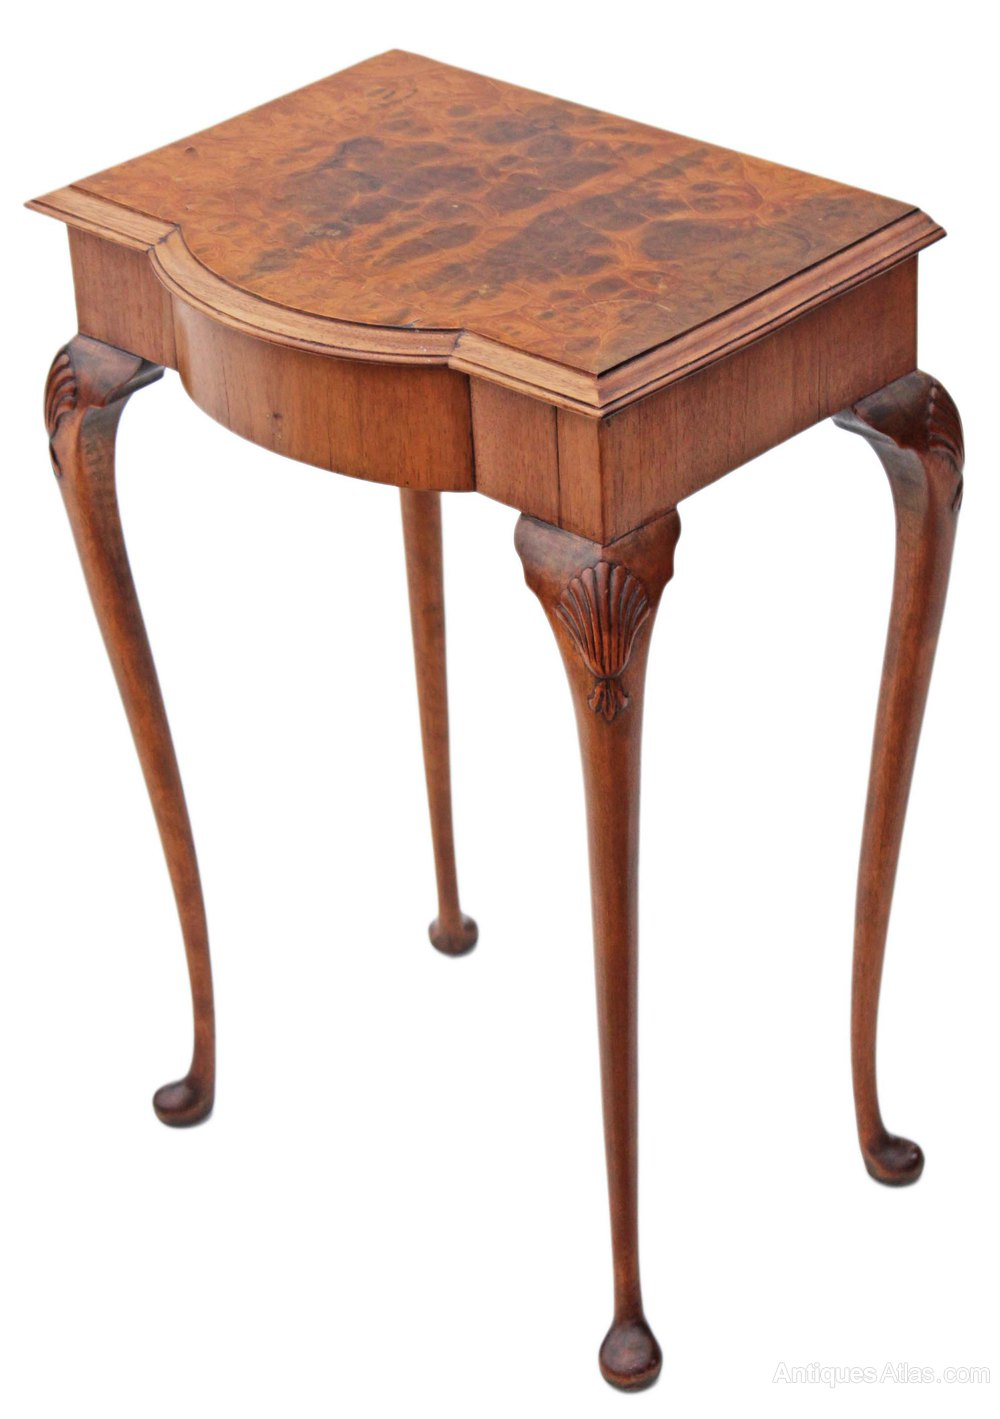 Small burr walnut hall side occasional table antiques atlas for Occasional tables